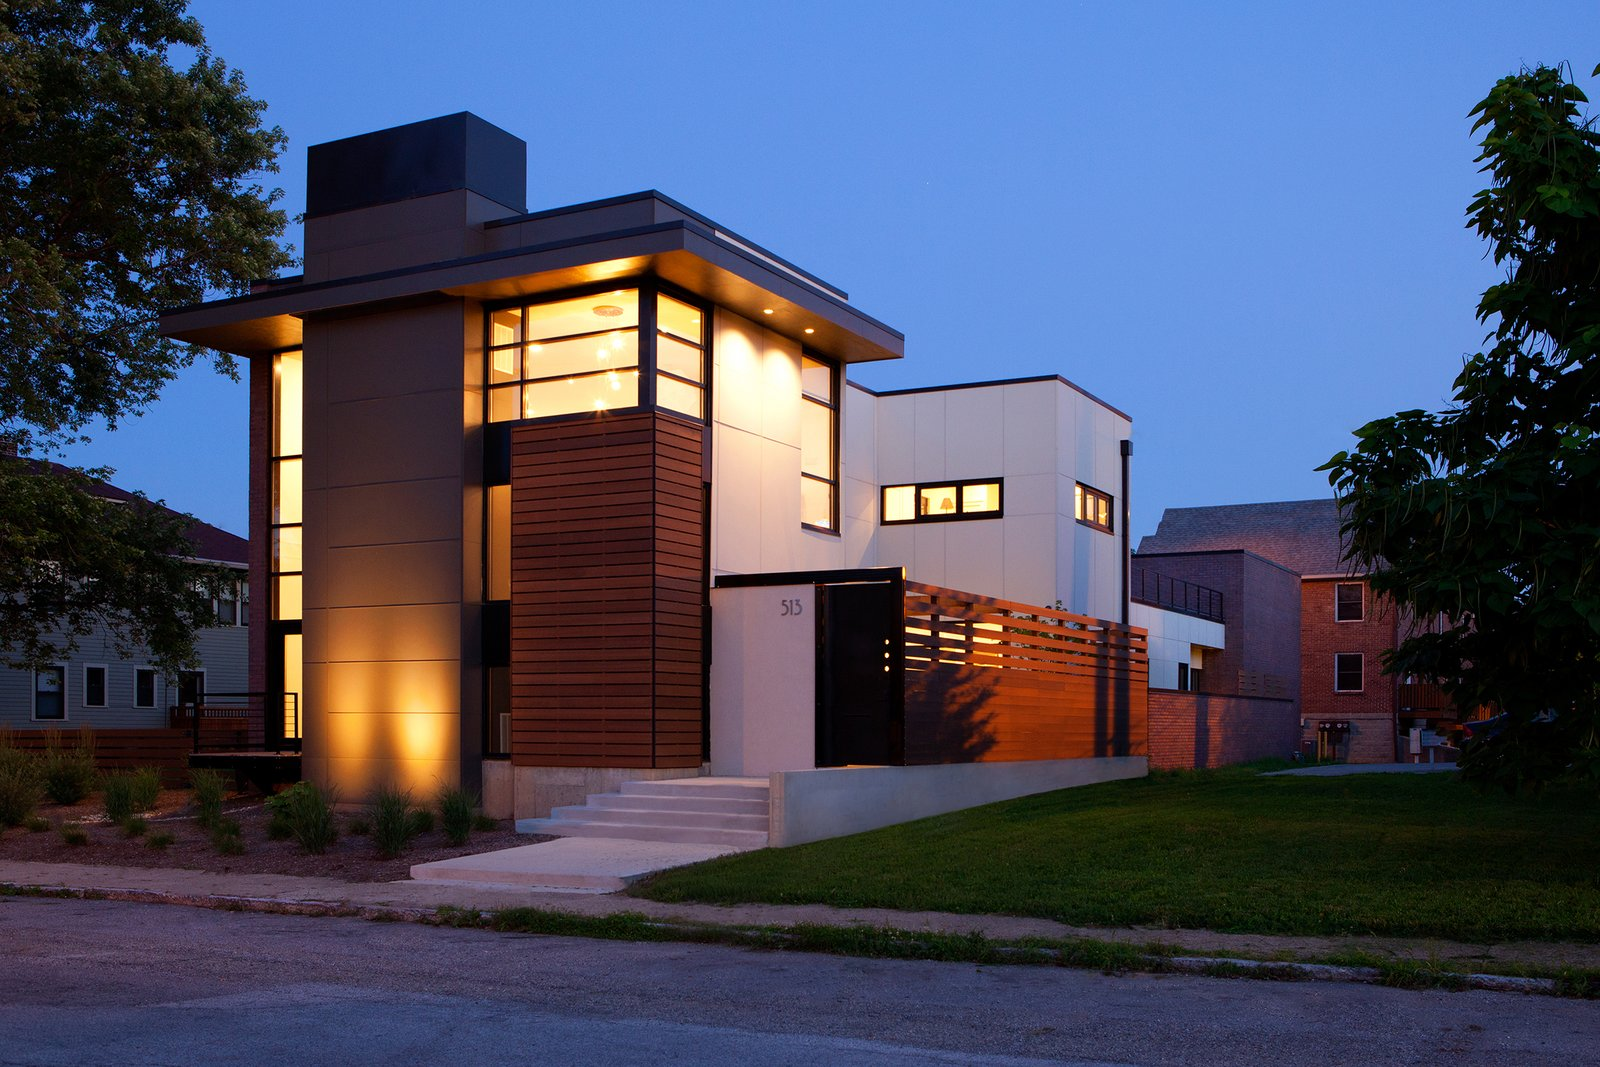 Exterior, House Building Type, Wood Siding Material, and Flat RoofLine The design provides a layer of privacy for the homeowners, while the solid massing peels away to large expanses of glazing, framing intended view sheds both inward and outward. Along with its verticality, the home pulls key horizontal elements from the established neighborhood rhythm, specifically the eaves and elevated floor lines.  City Cottage by ONE 10 STUDIO Architects